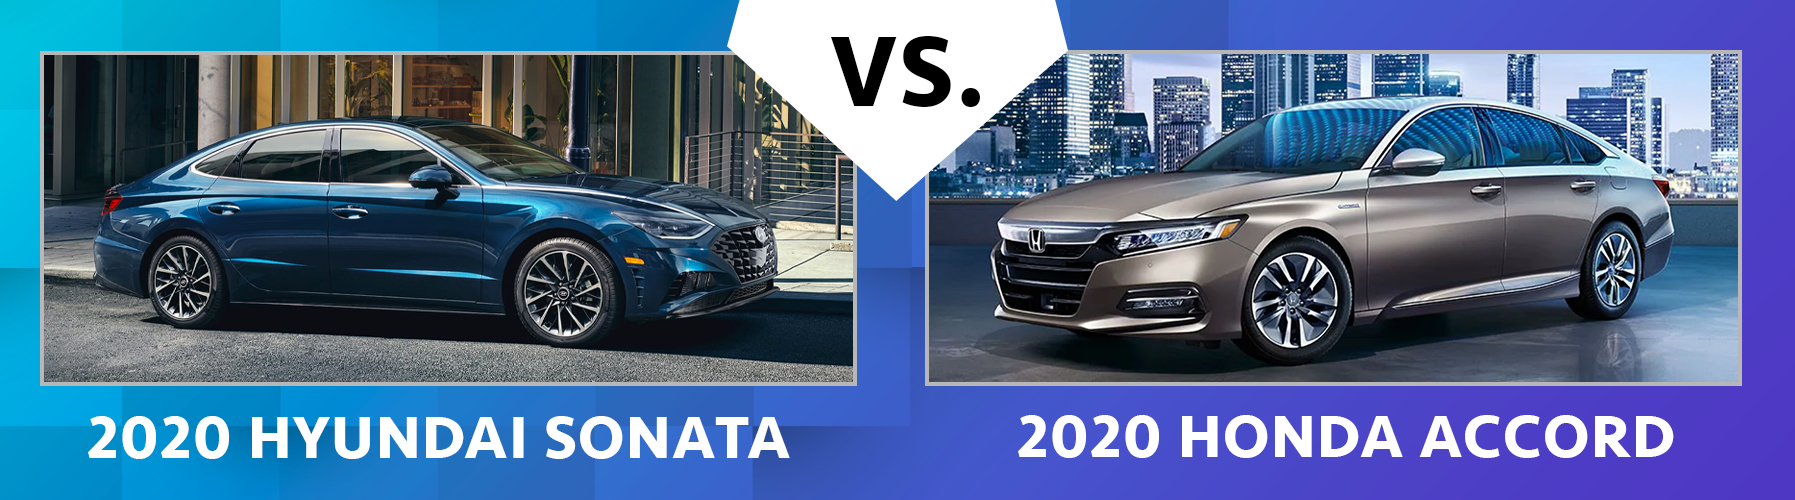 2020 Sonata vs 2020 Accord Performance